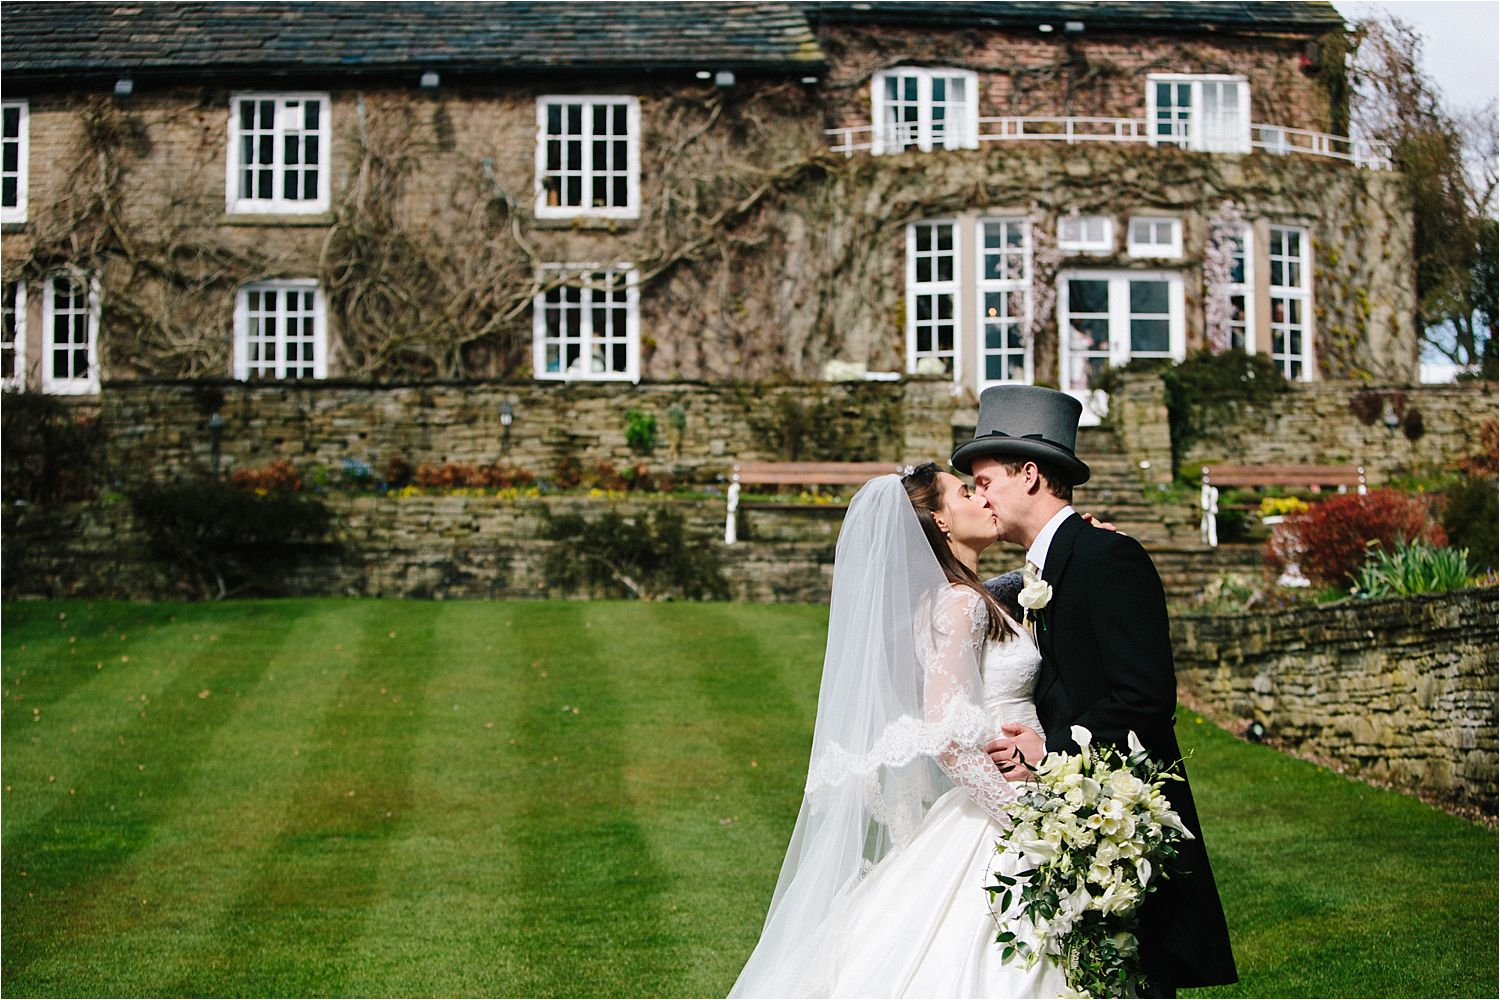 Bride and groom exchange a kiss in the gardens of Hilltop Country House in Cheshire